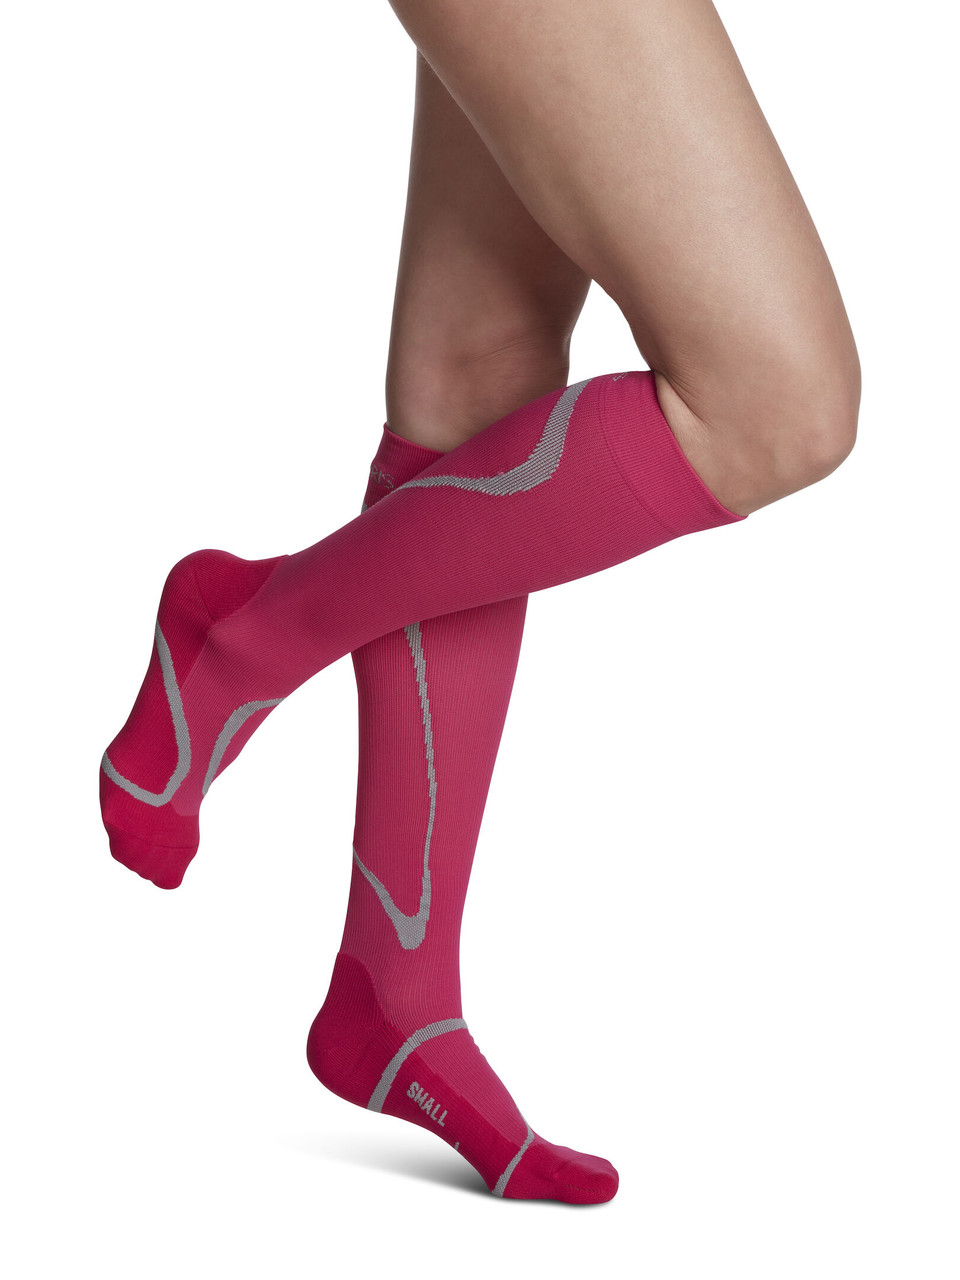 High Tech Athletic Compression Stocking Pink